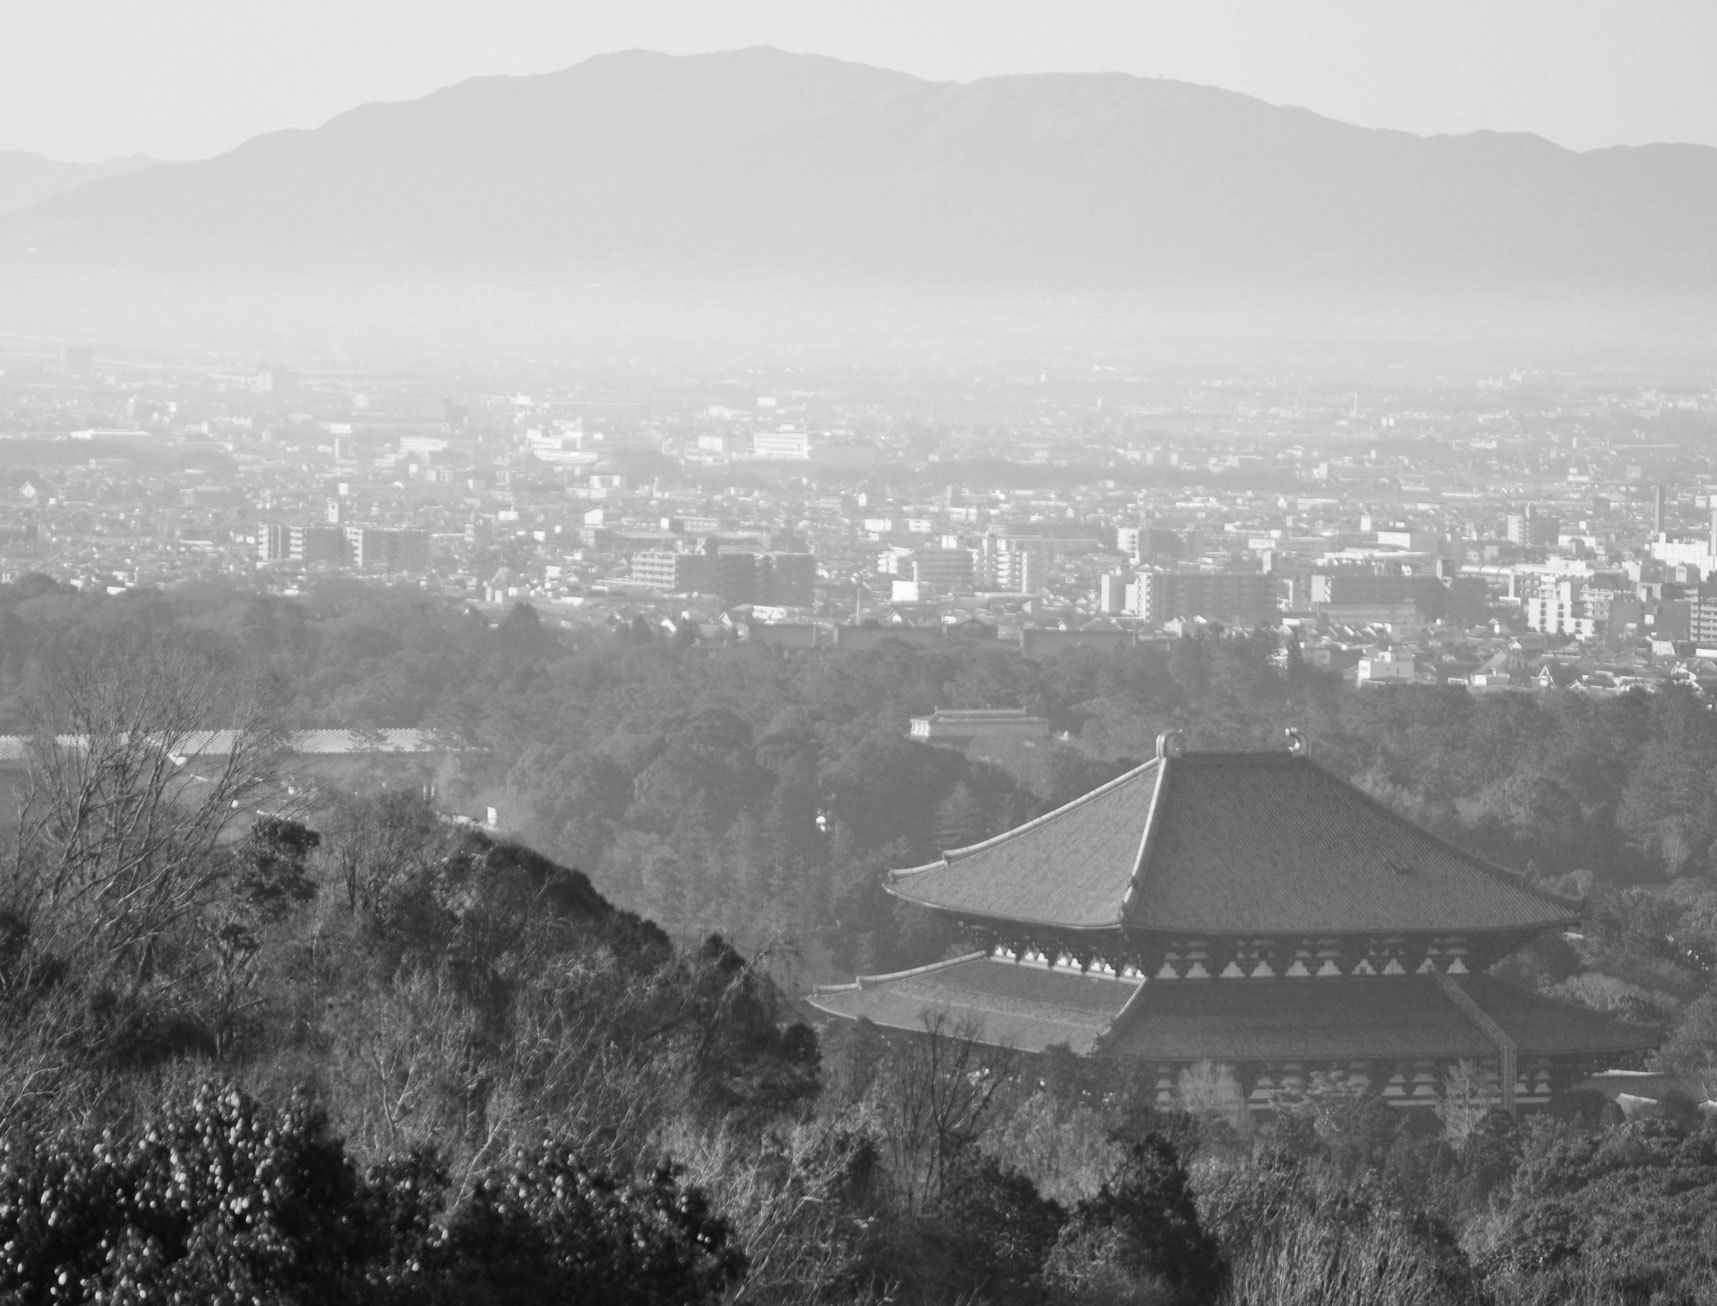 Nara on the first day of 2019